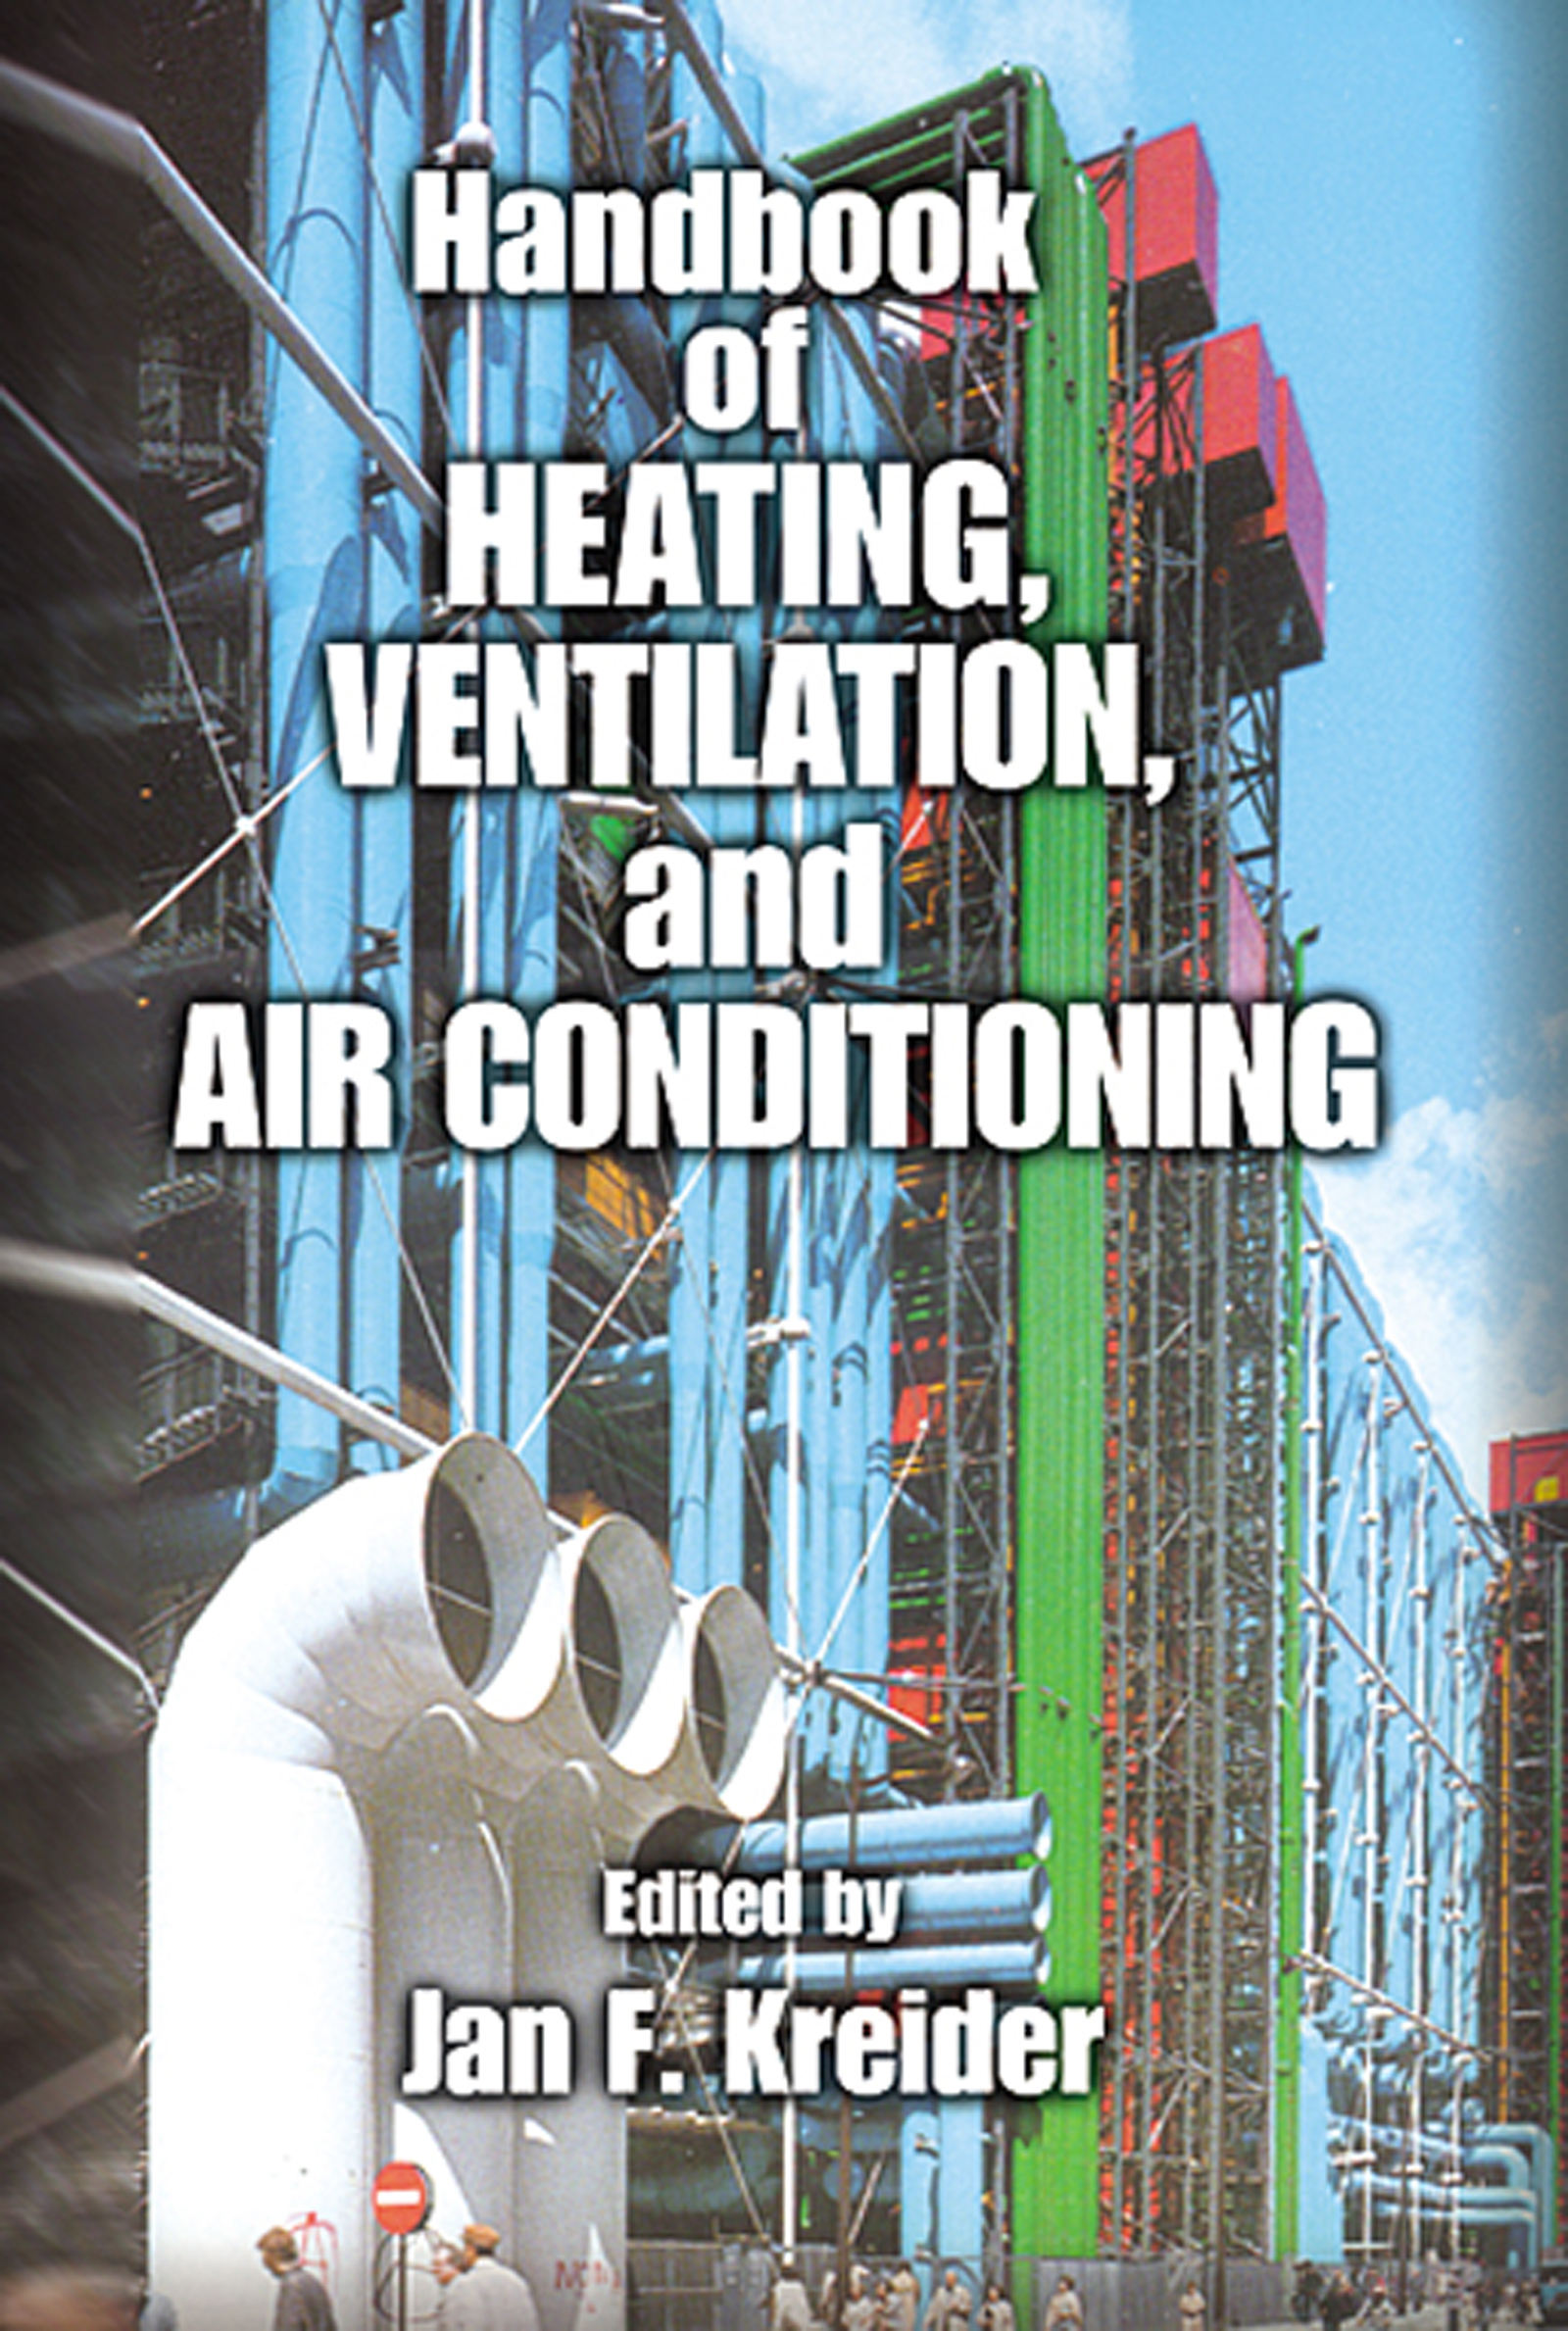 Handbook of Heating, Ventilation, and Air Conditioning